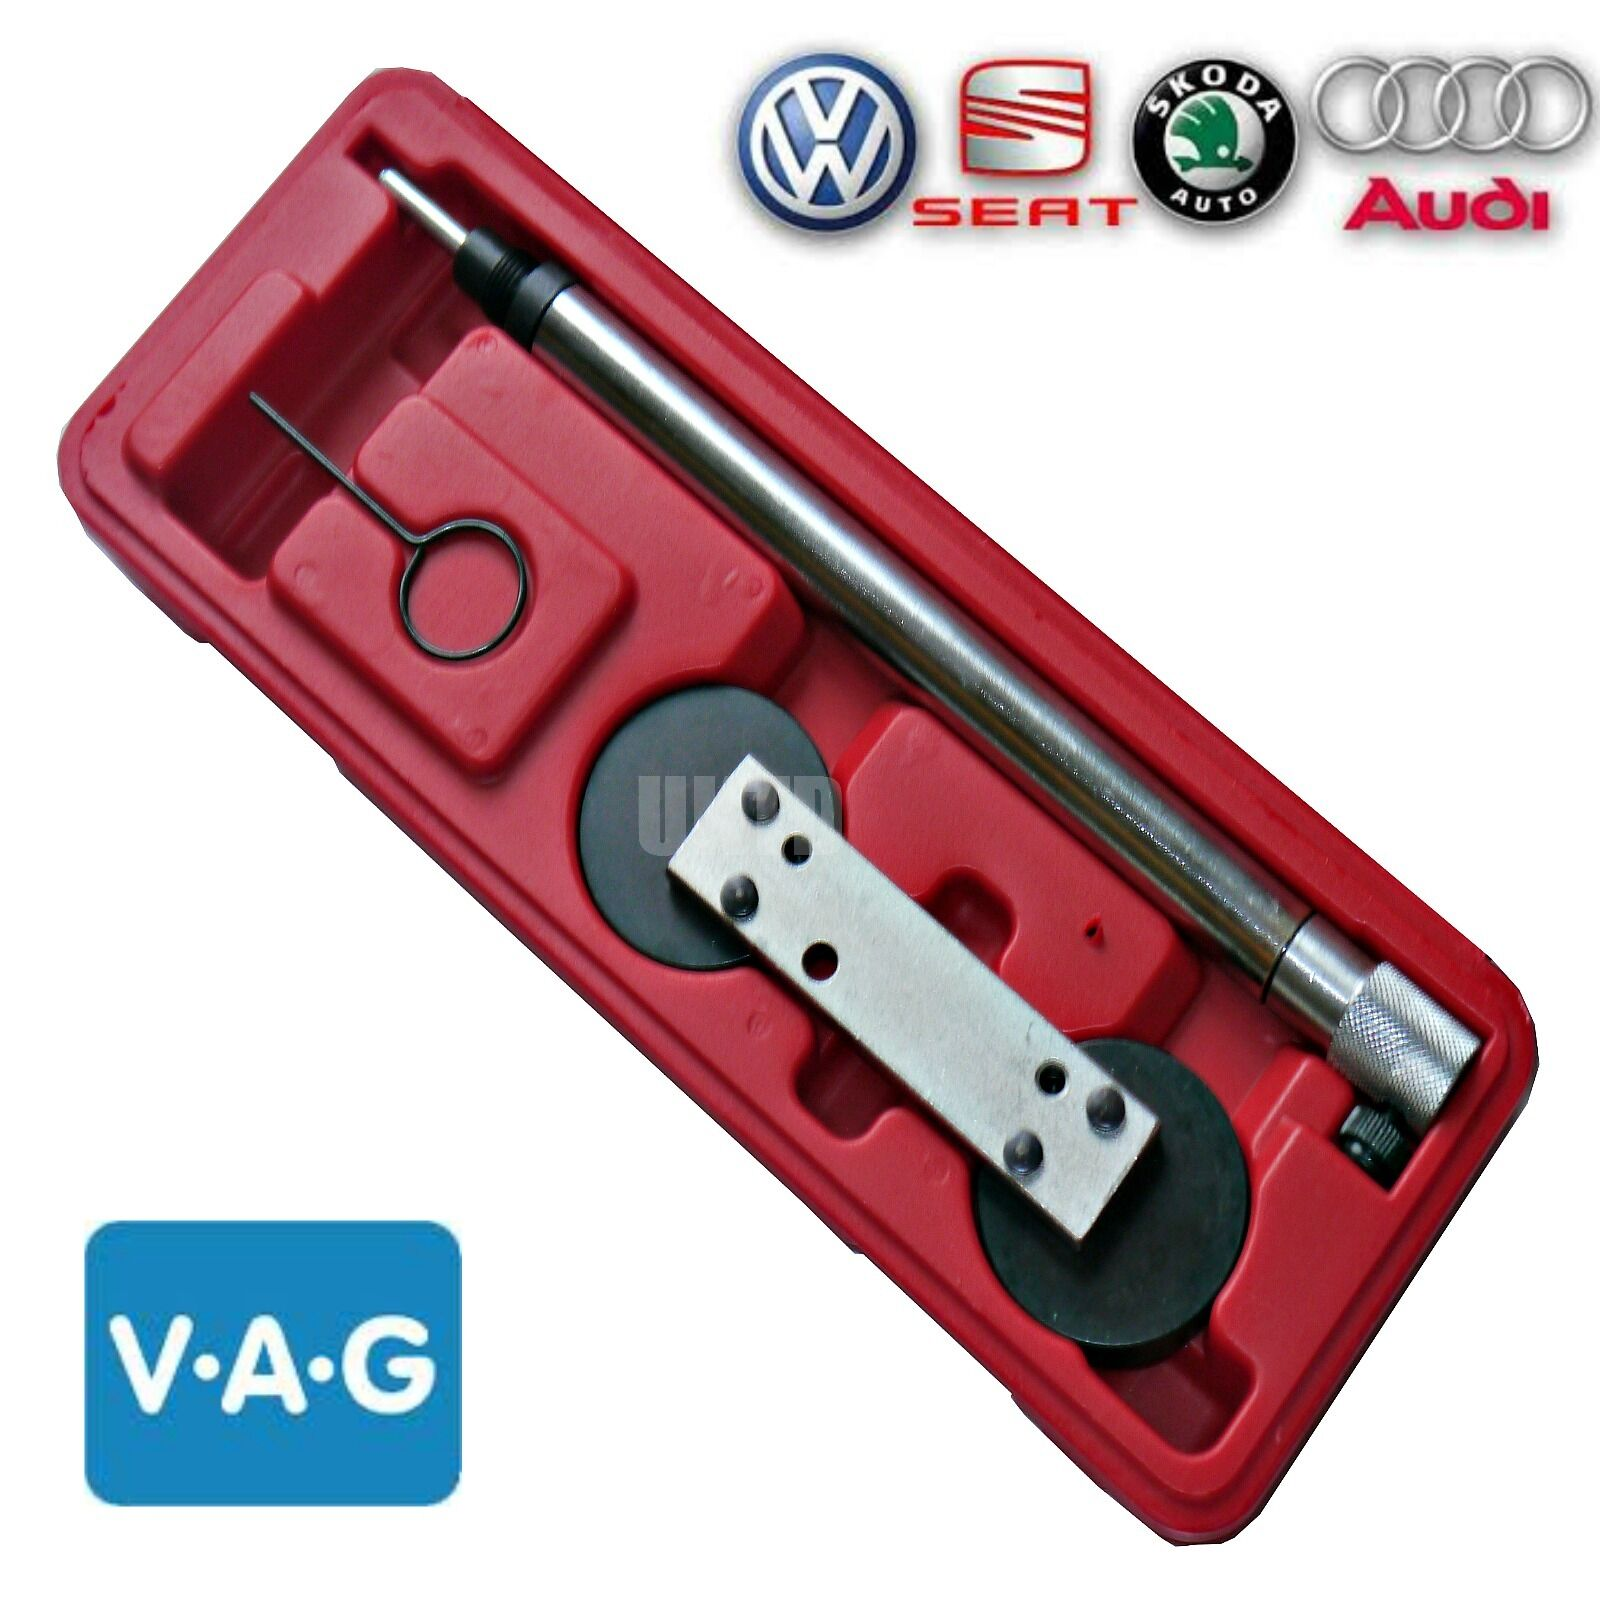 Vw 1600 Engine Removal: VAG VW SKODA AUDI Timing Setting Locking Tool Set Kit 1.4